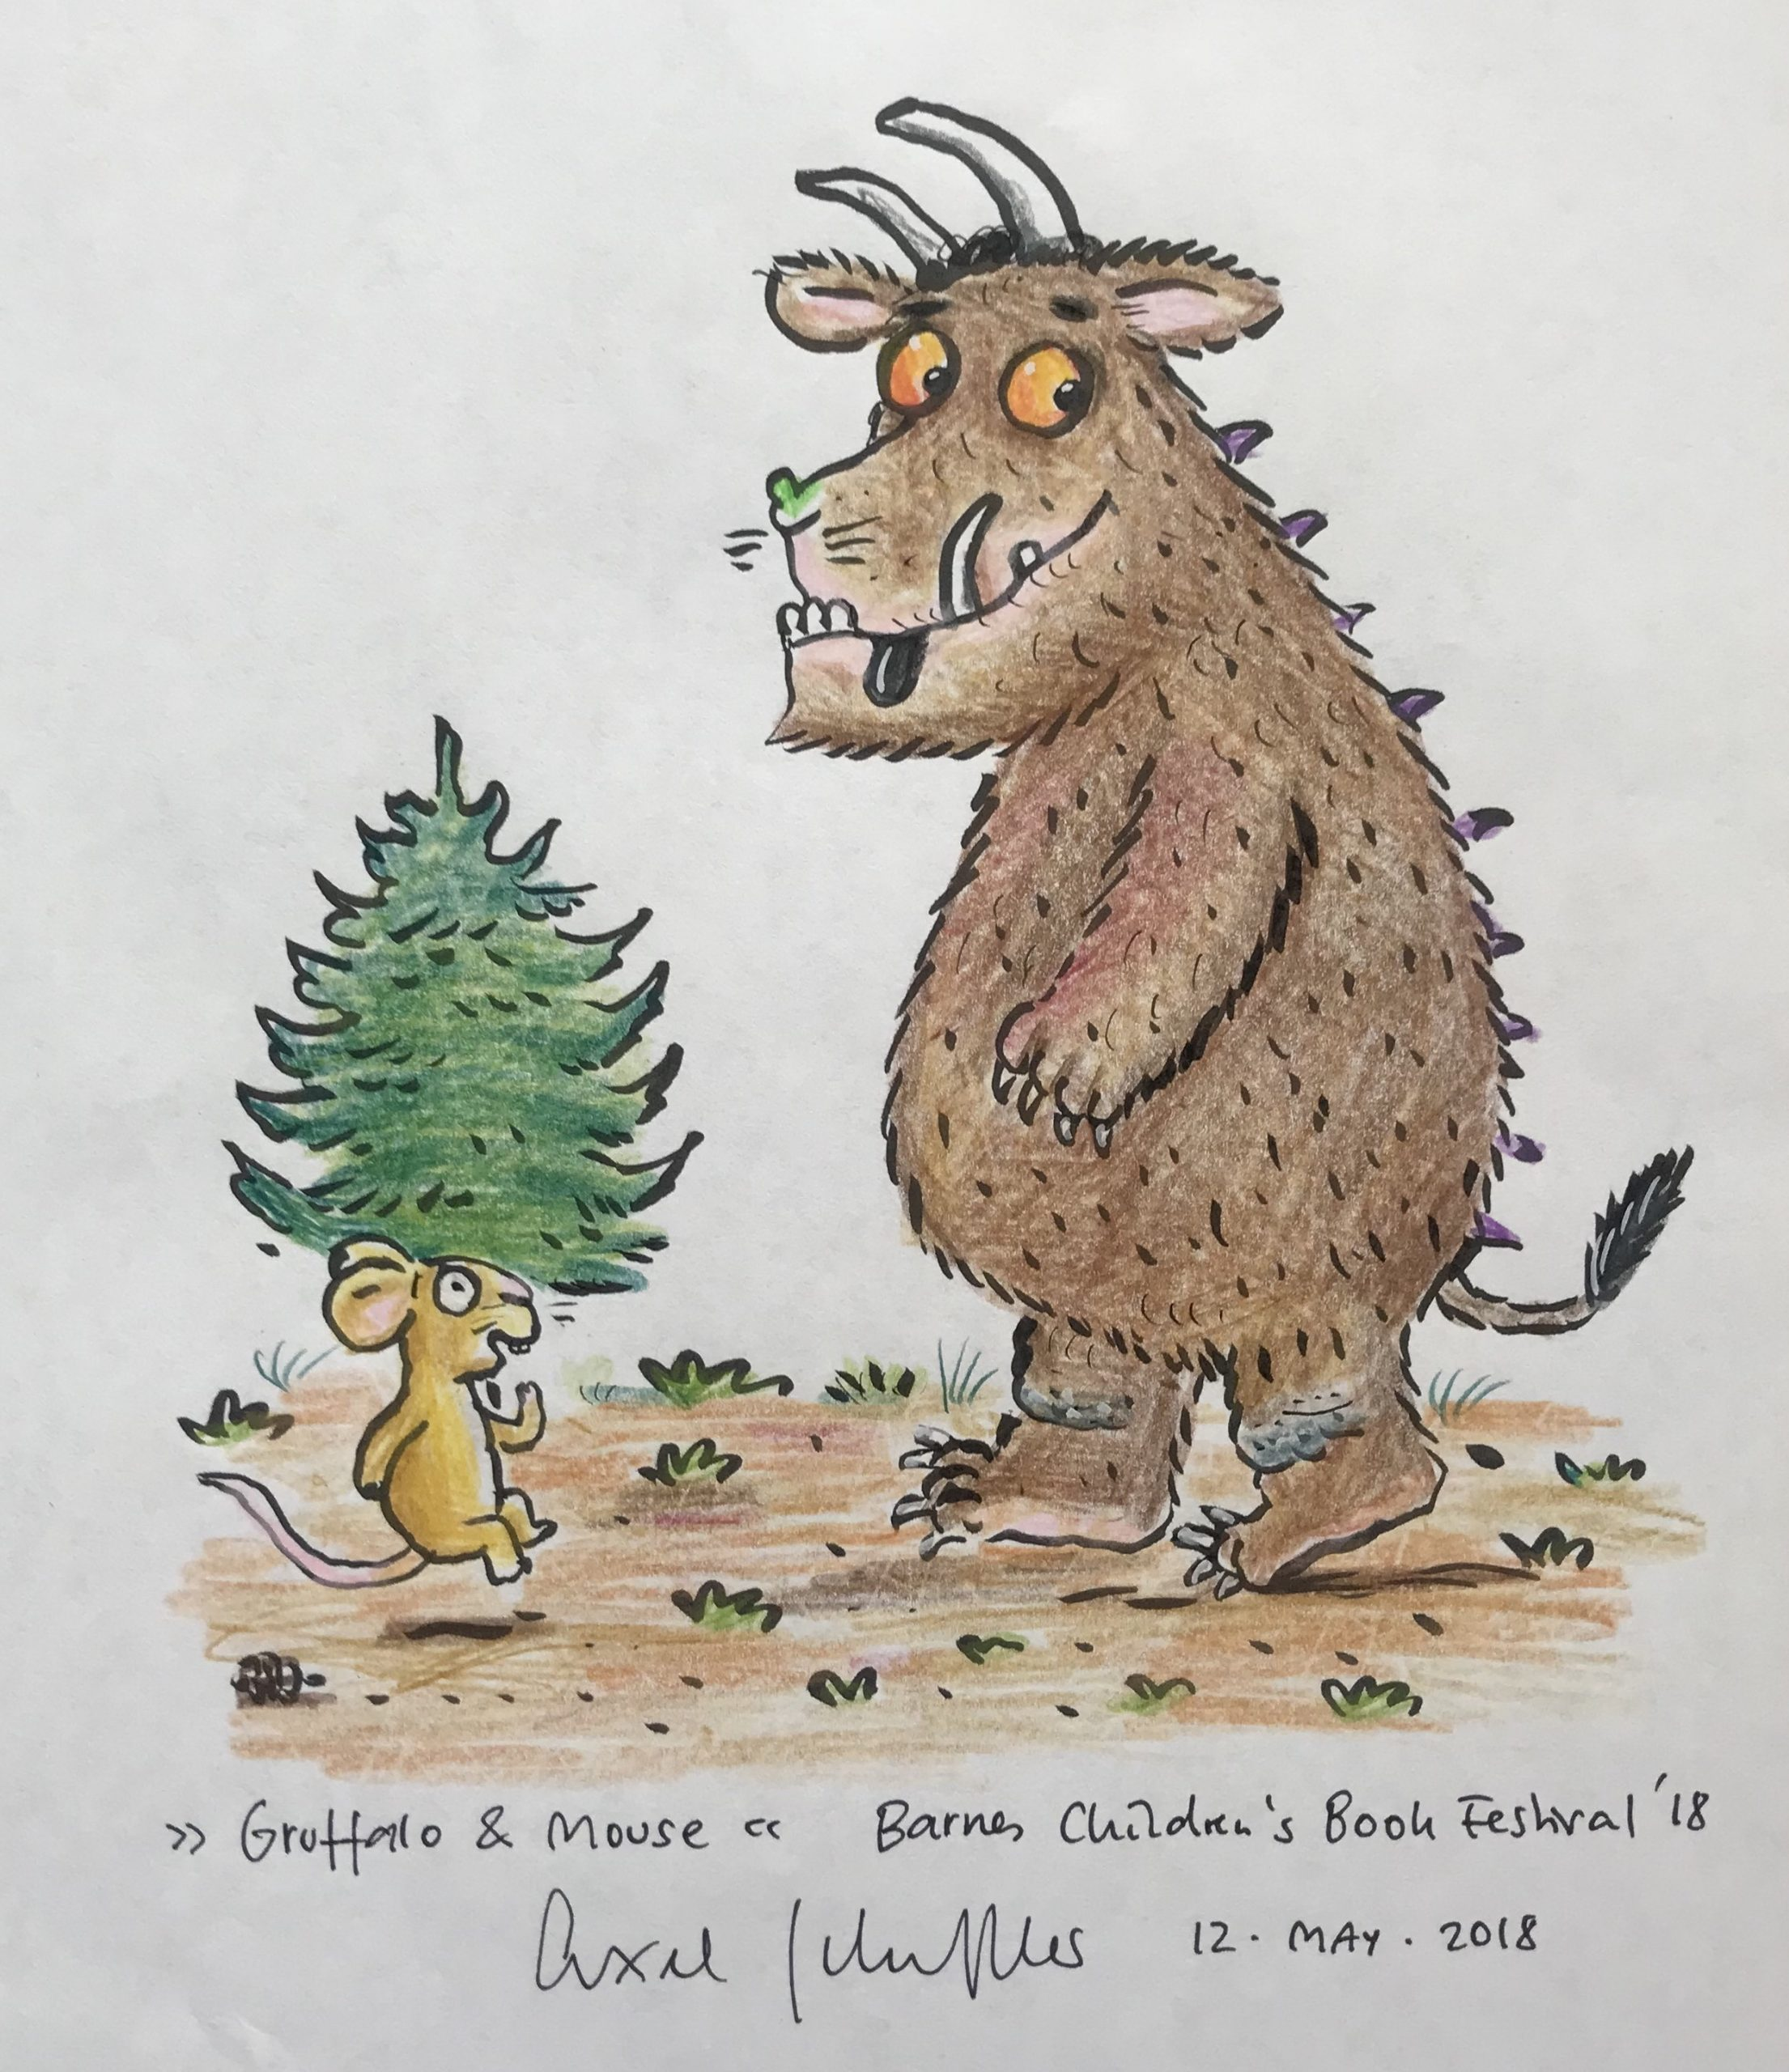 Mouse and The Gruffalo